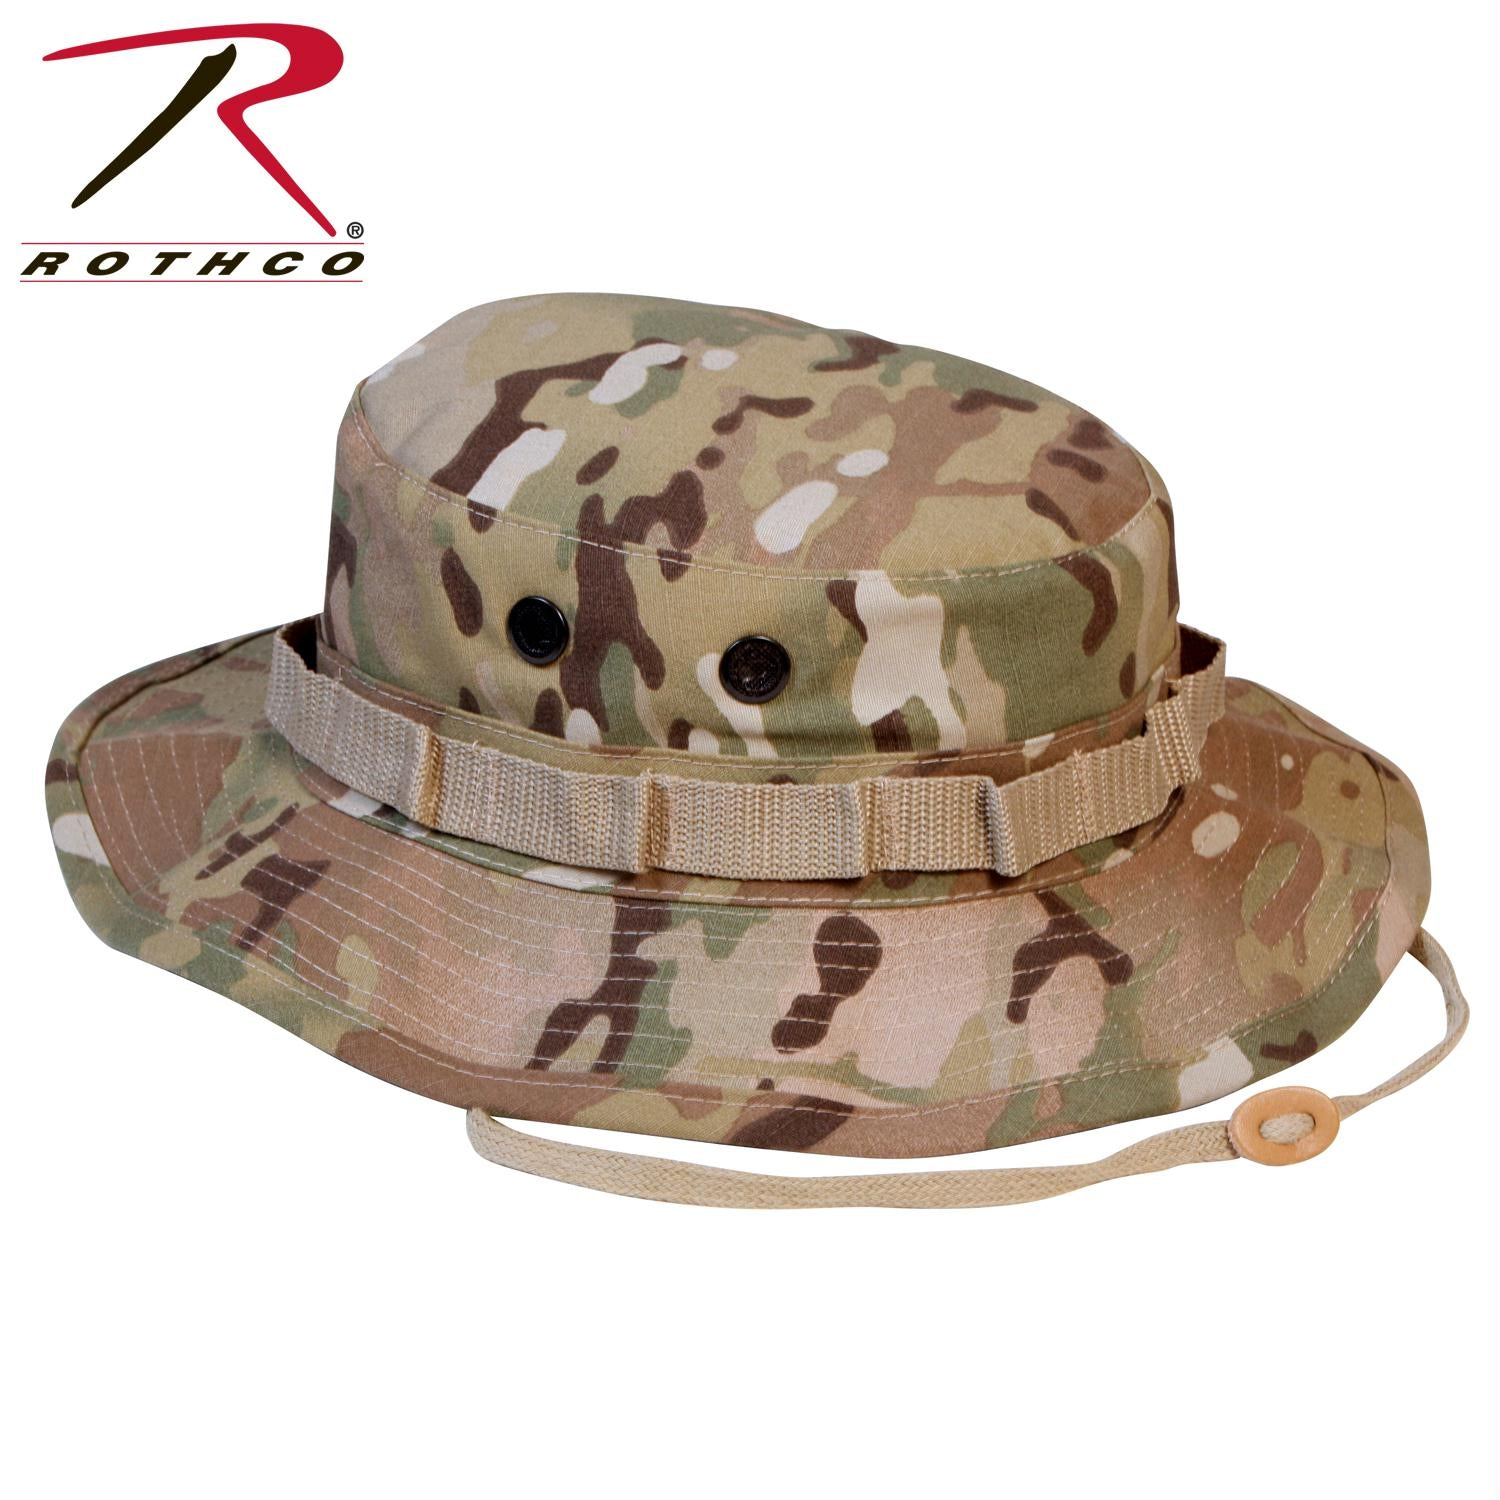 Rothco Boonie Hat - MultiCam - 7